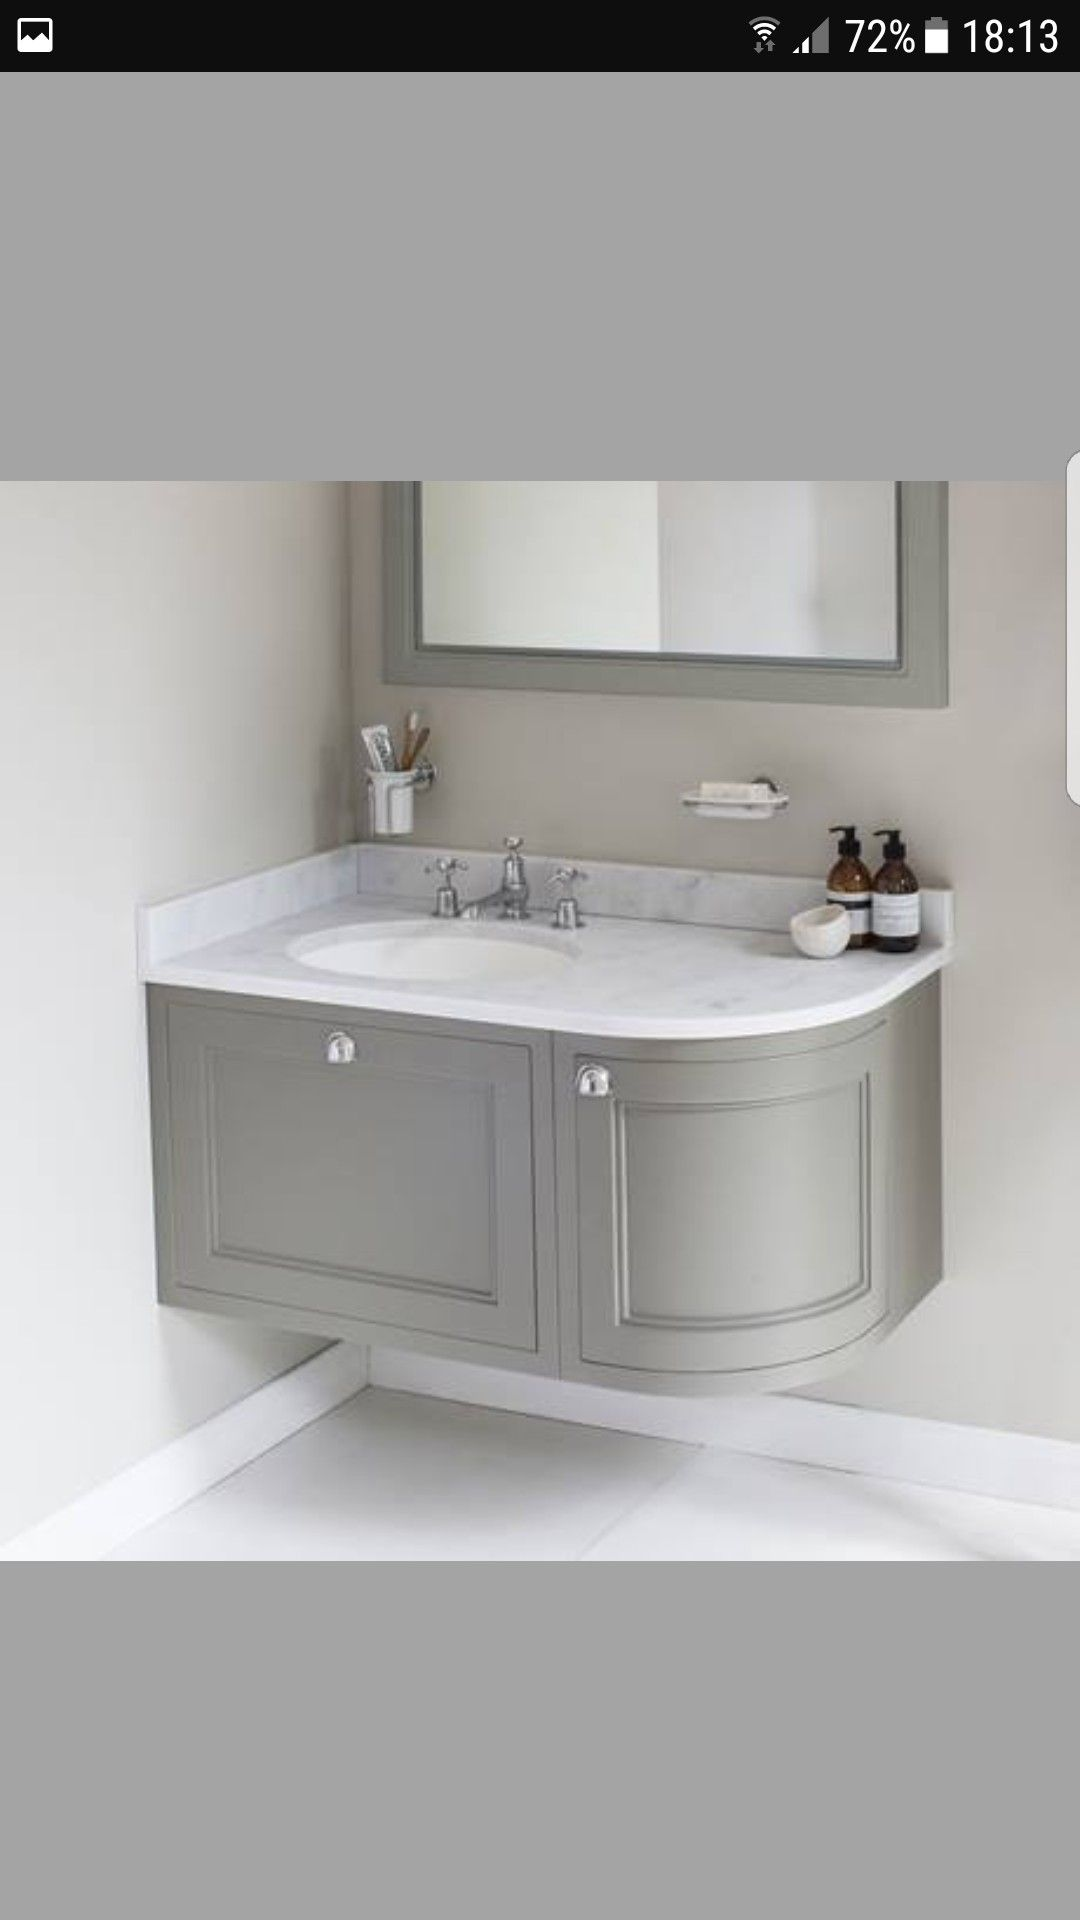 Pin By Asha Nassor On Future House Corner Sink Bathroom Small